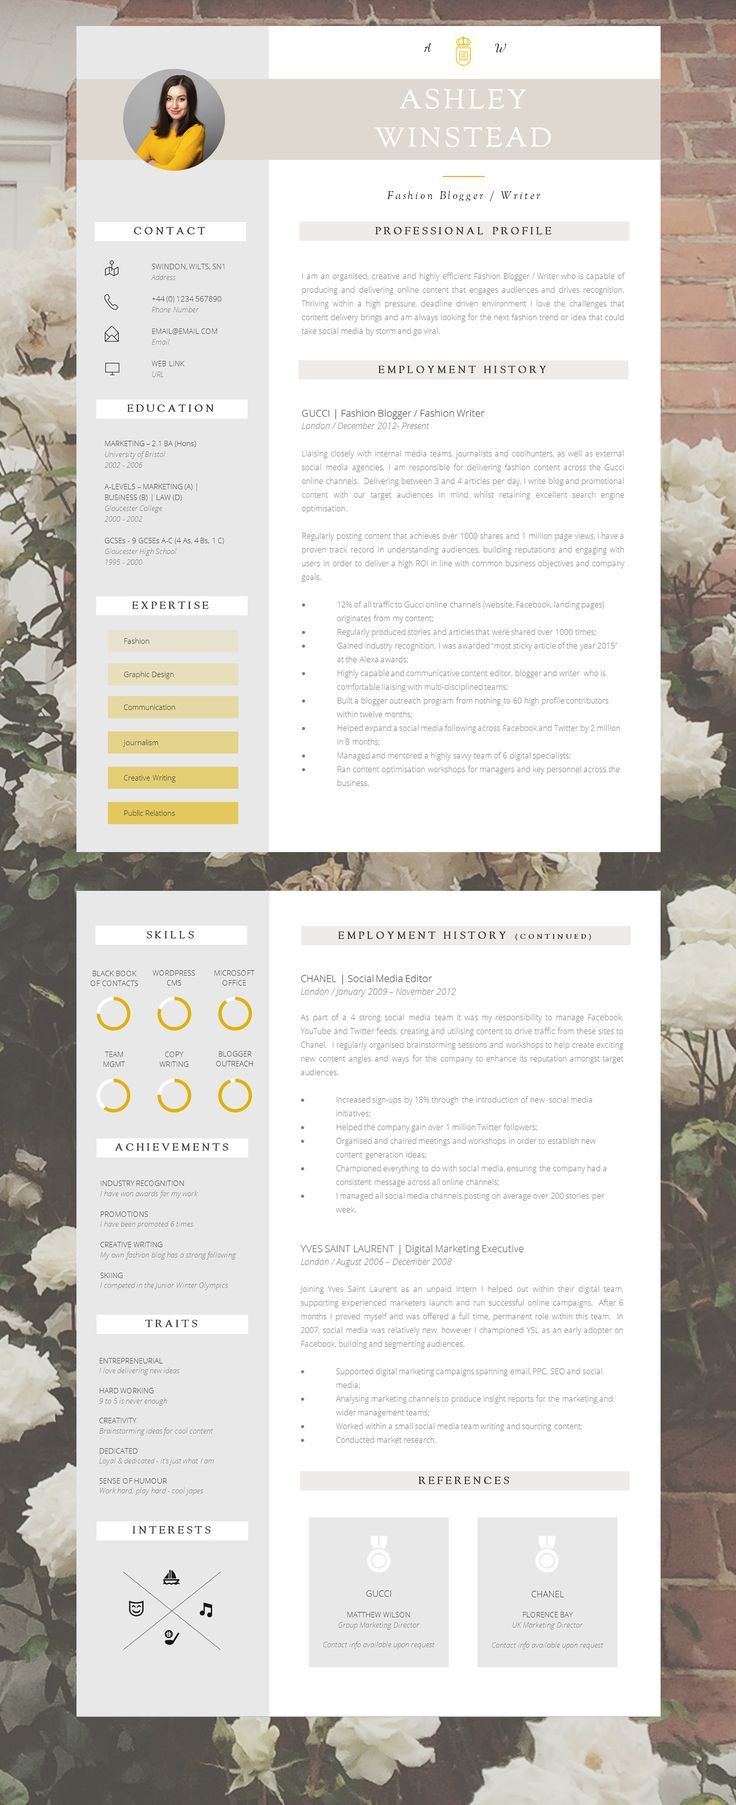 75 best cv & name card images on Pinterest | Resume templates, Page ...